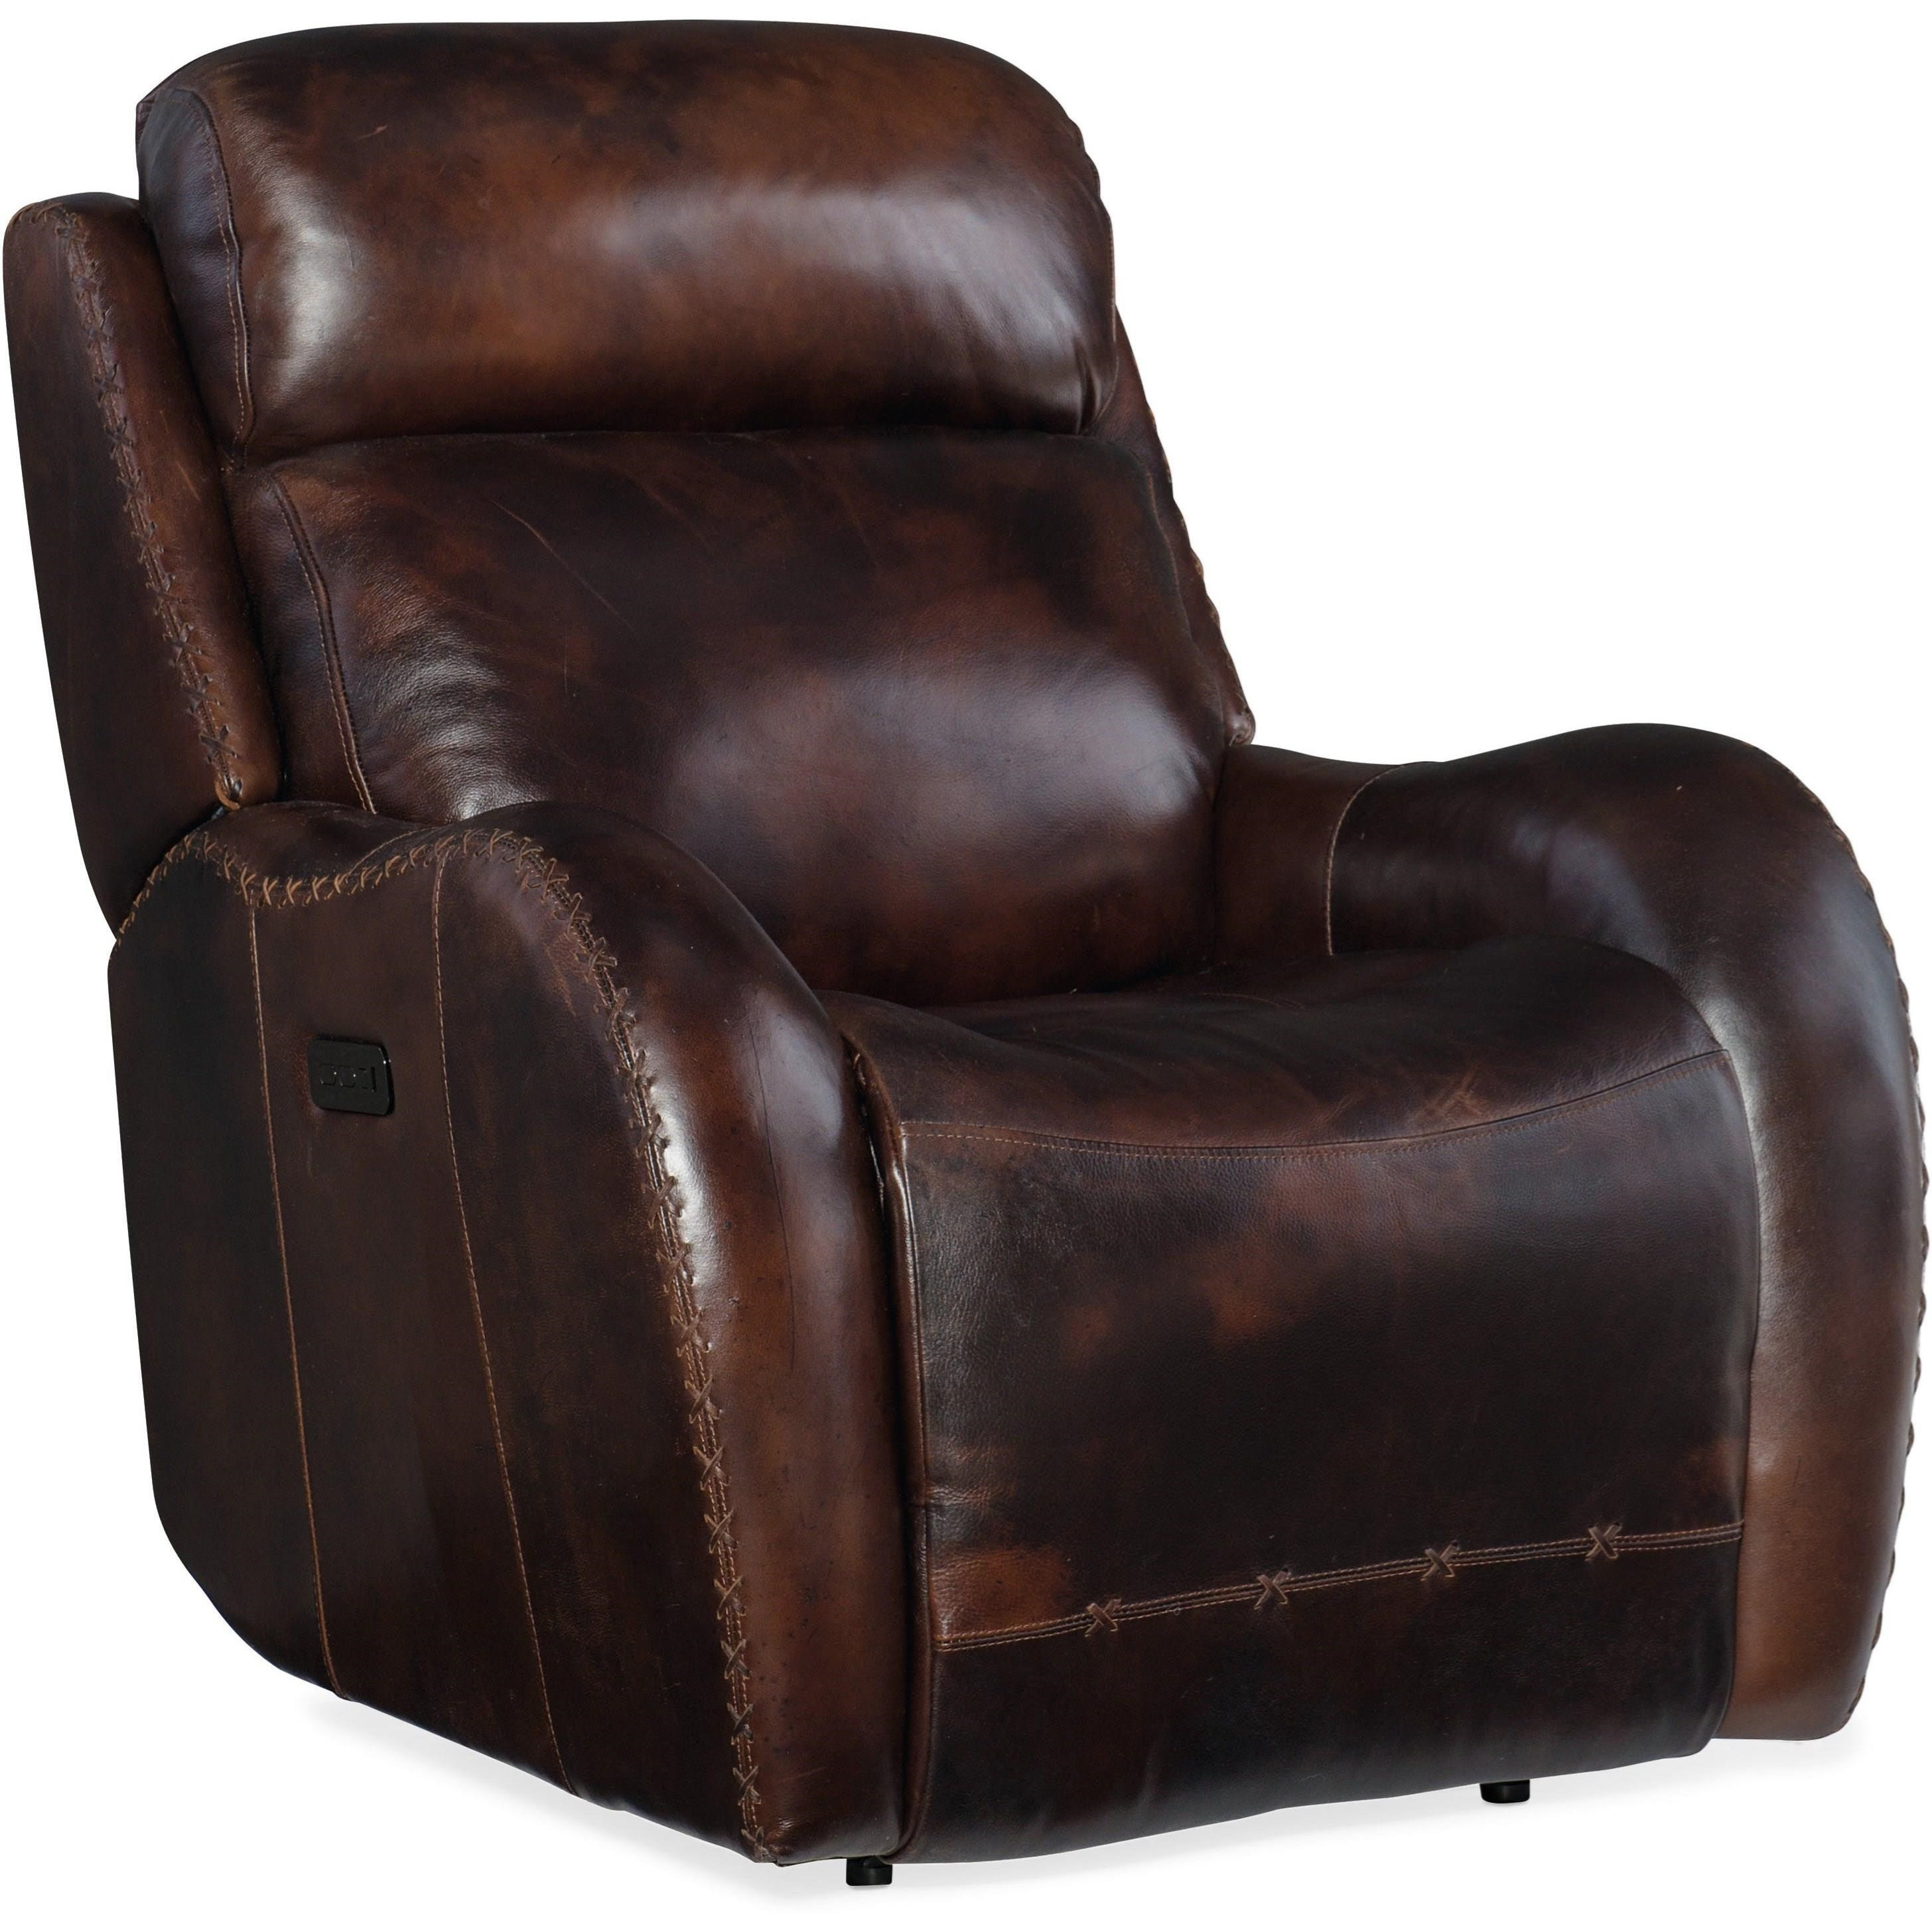 Chambers Power Recliner with Power Headrest by Hooker Furniture at Baer's Furniture